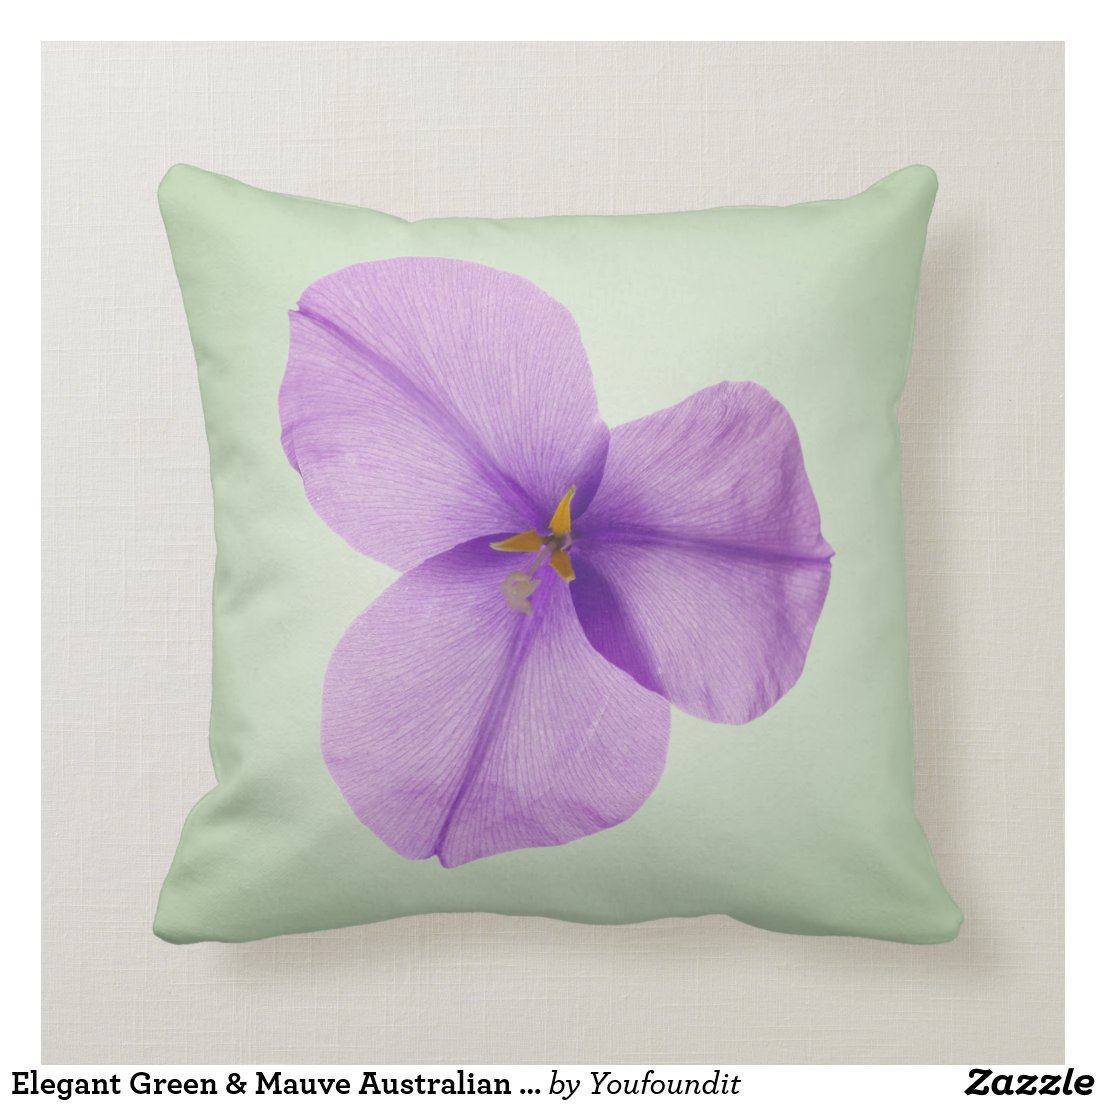 Elegant Green & Mauve Australian Native flower Cushion